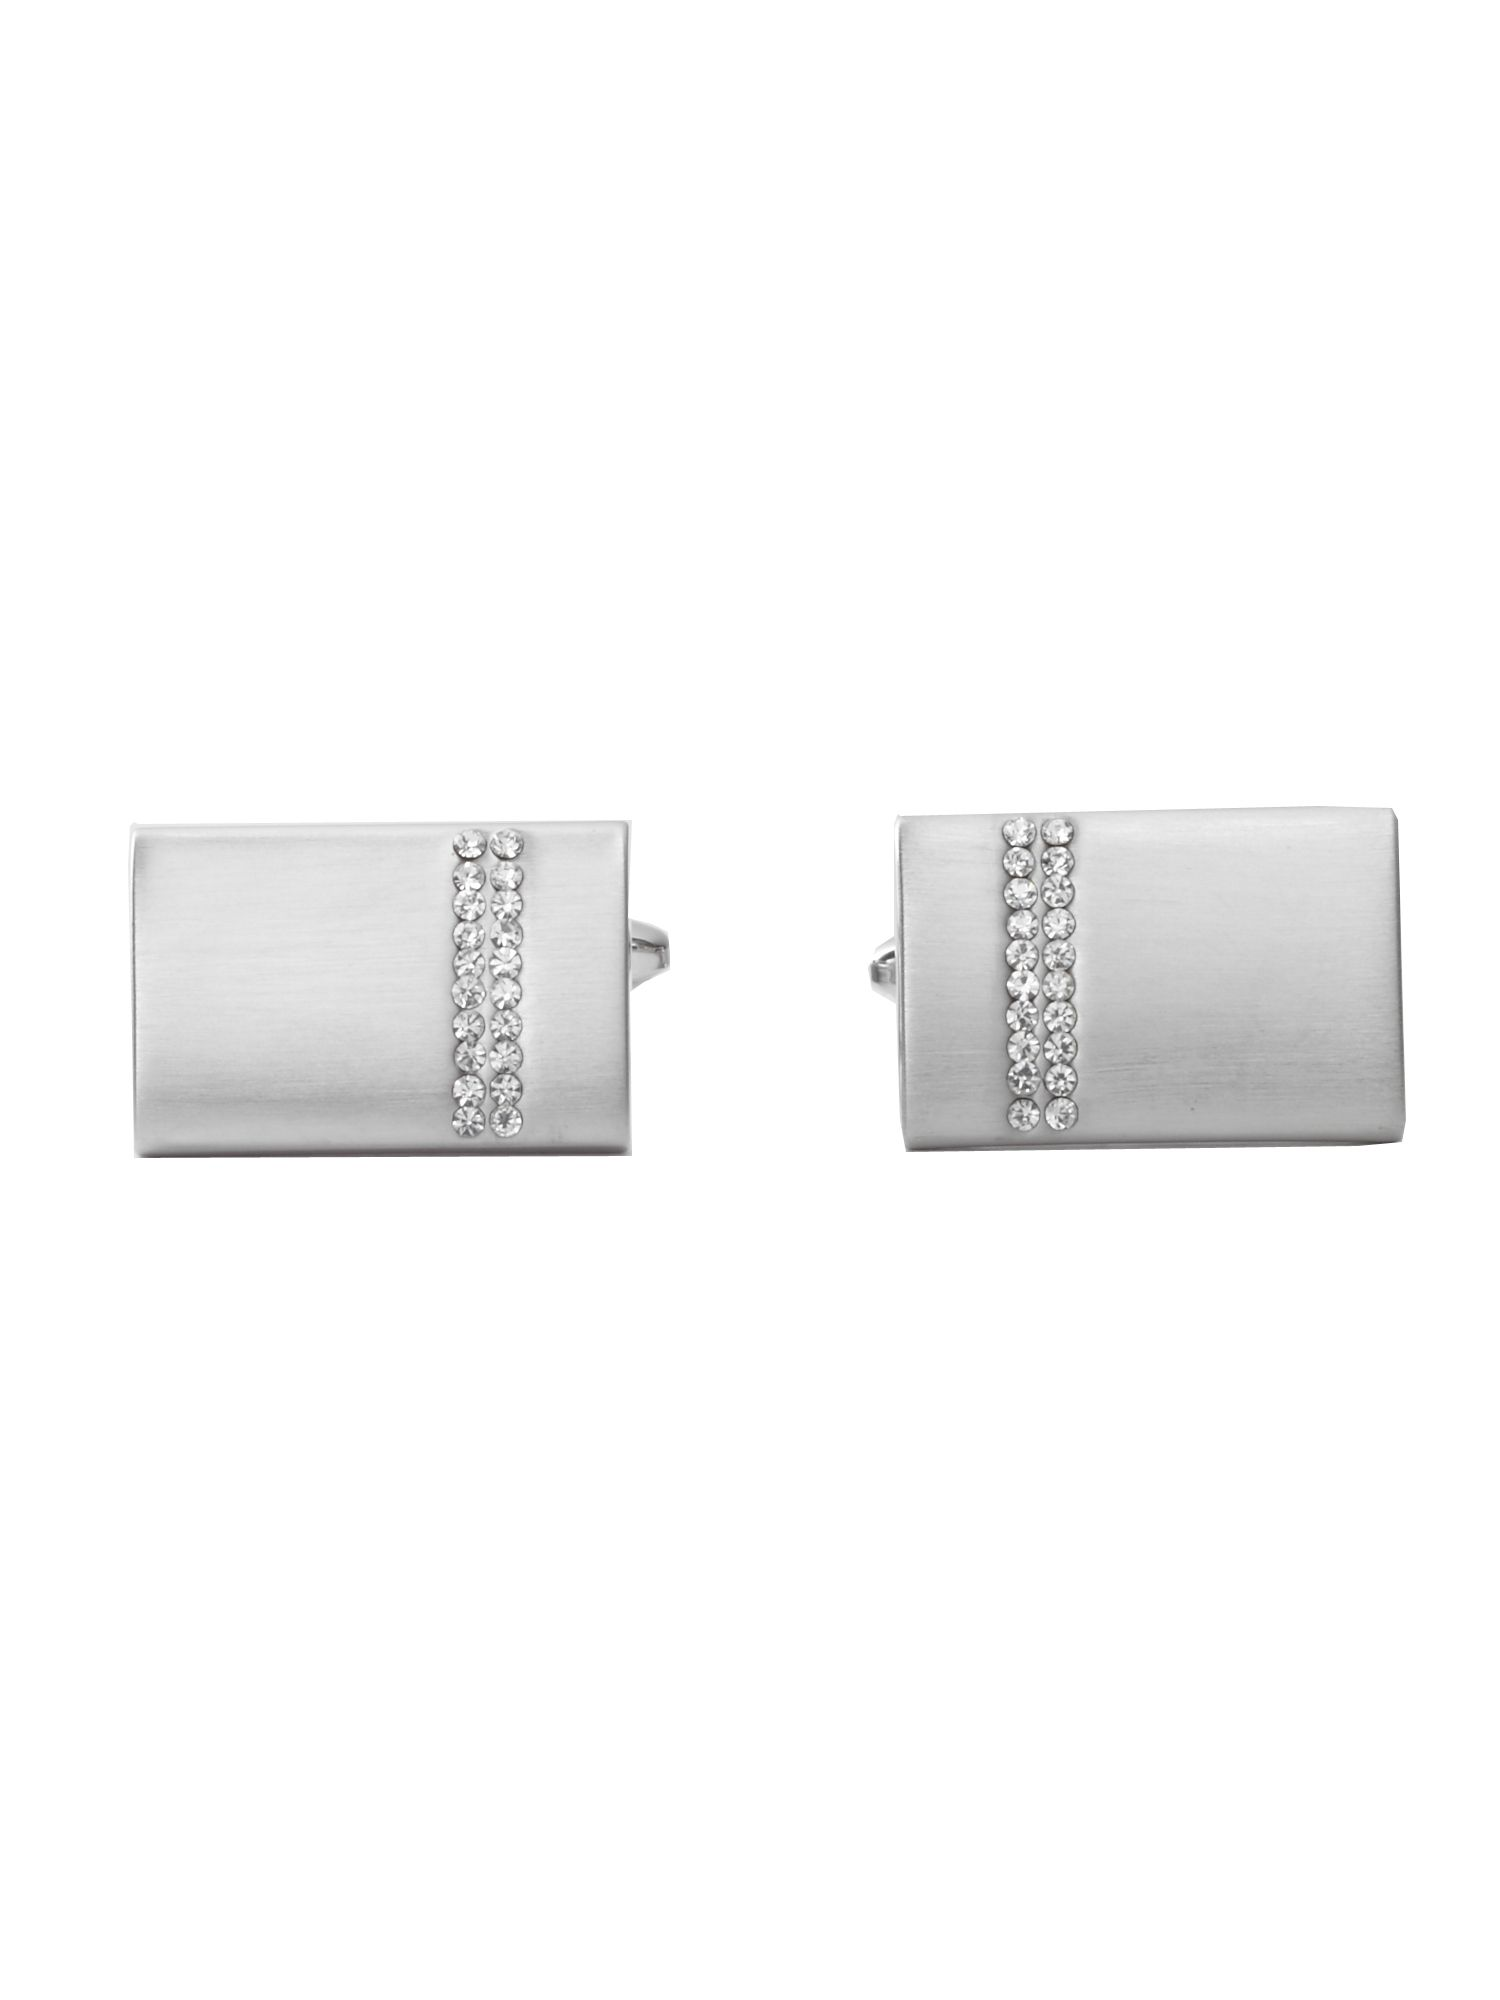 Silver rectangle with crystal cufflink